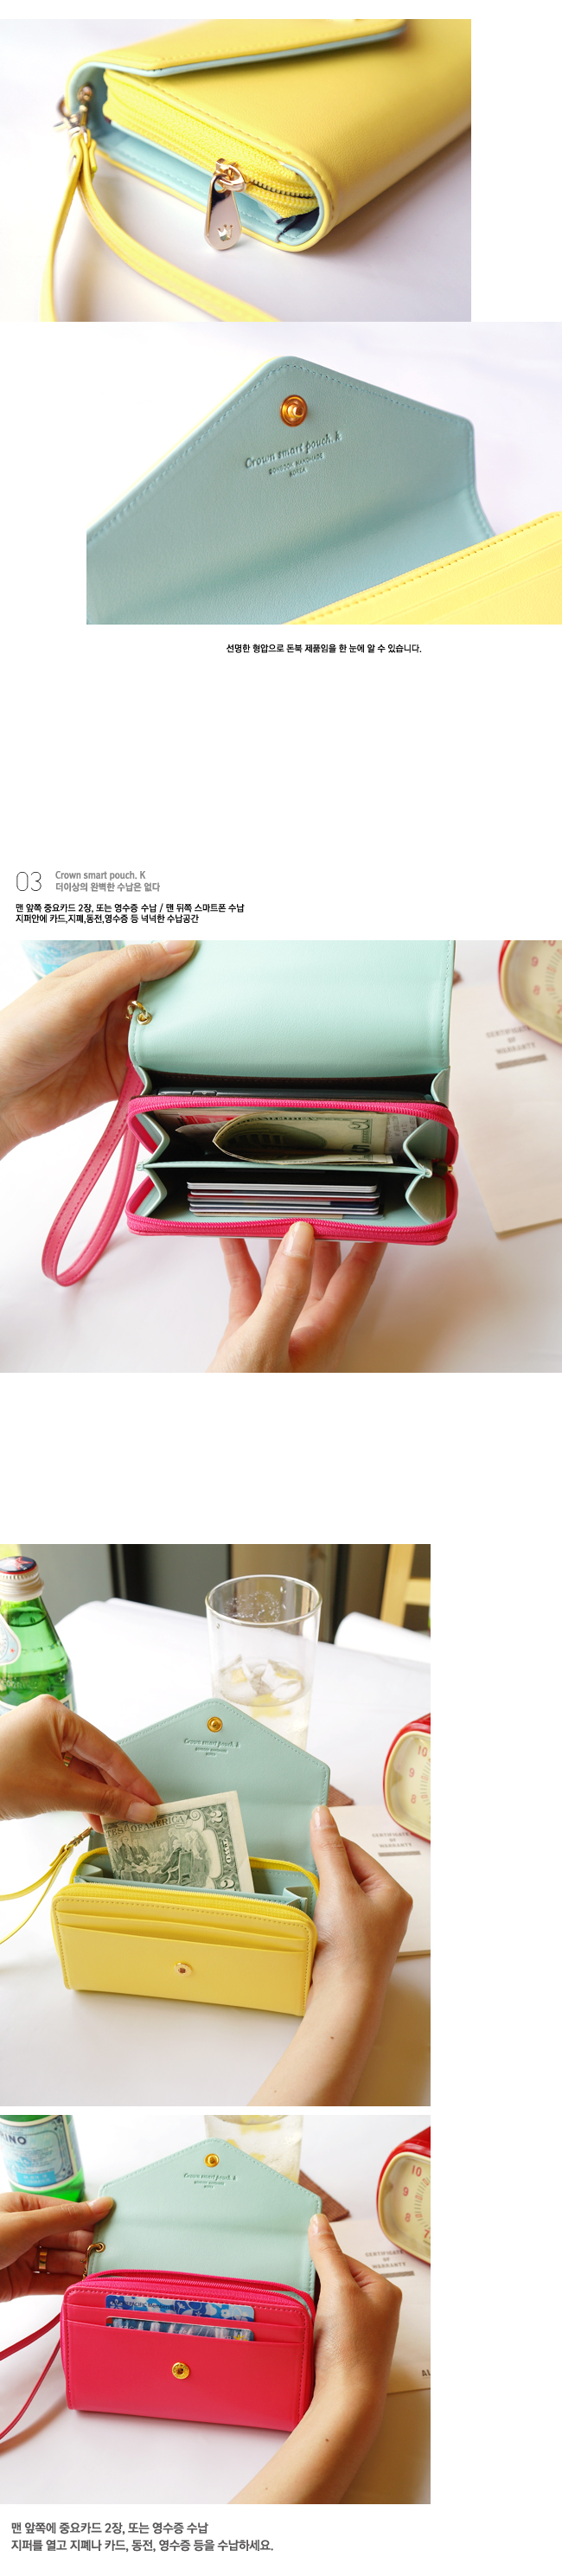 New Multi Propose Envelope Wallet Case Purse for Galaxy S2